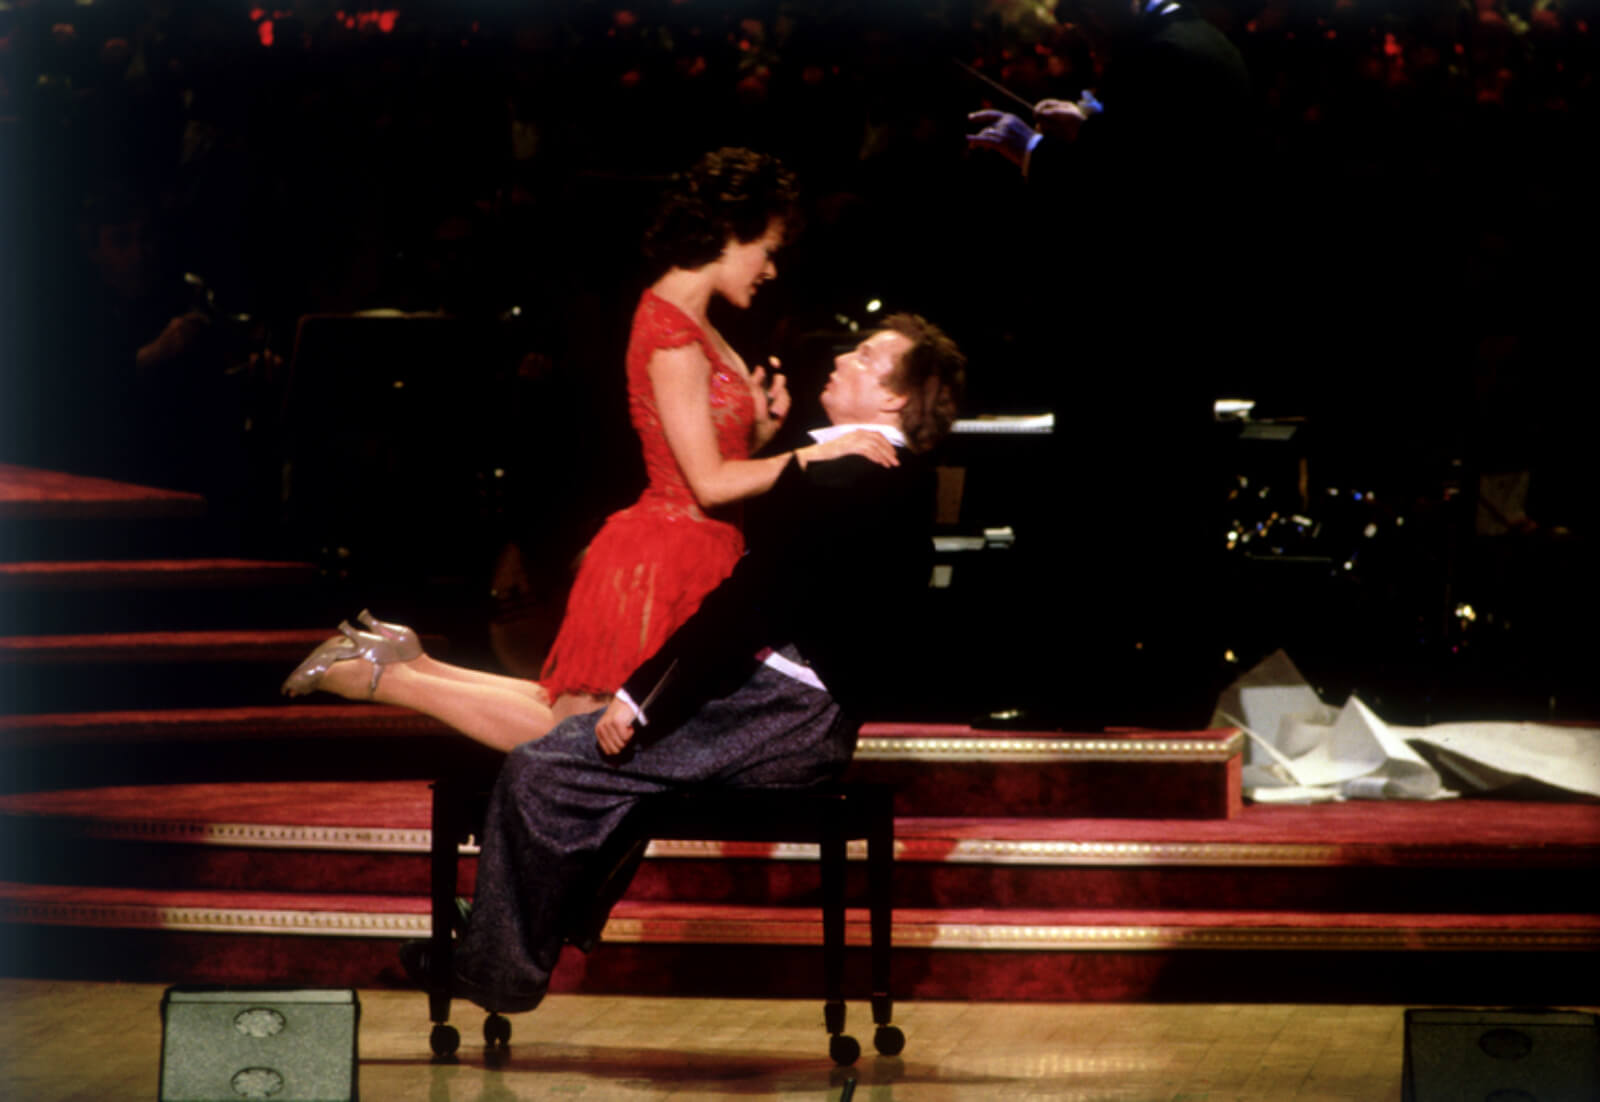 """Karen Ziemba and Bill Irwin performing """"Sooner or Later"""". He is seated on a chair and she is seated facing him. Both legs are bent in attitude position behind her."""